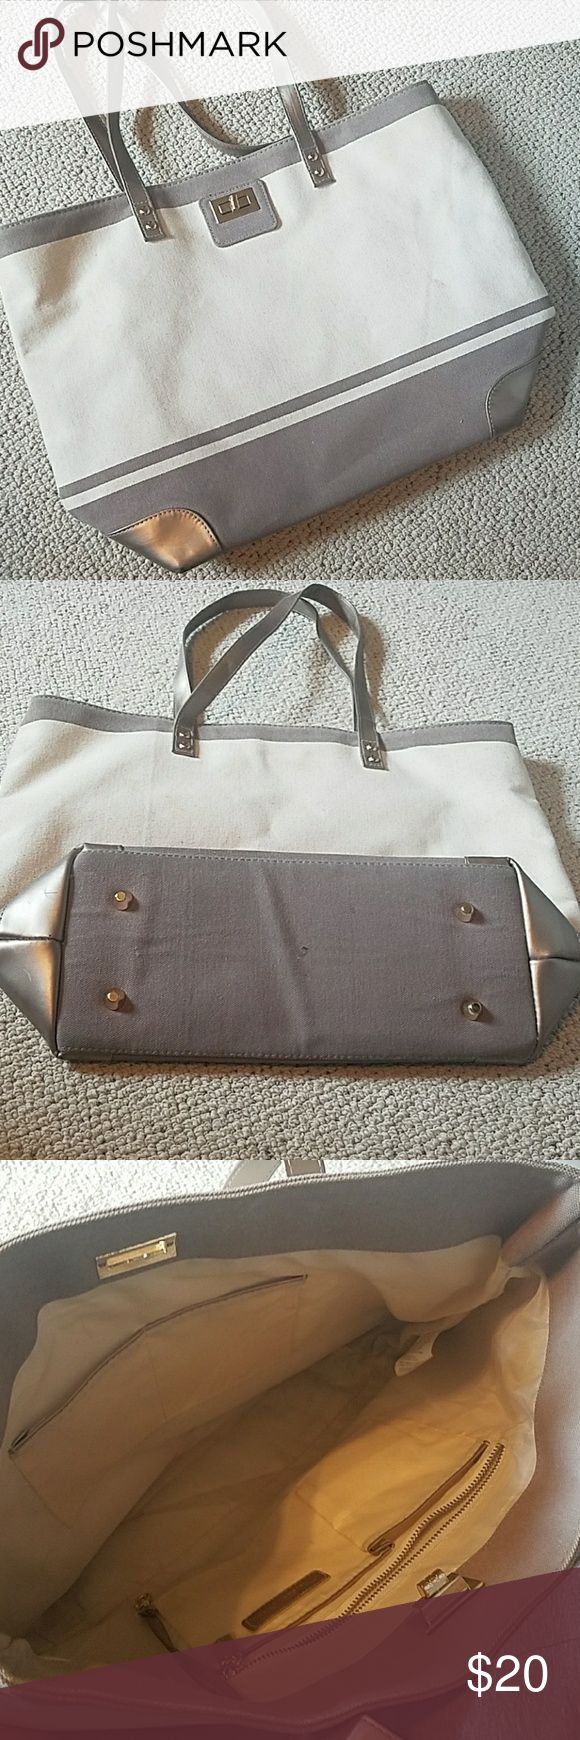 Thursday Friday Tote-Antler Thursday Friday camvas tote. Brown amd cream with champagne accents.  See pics for wear. Approx 16x12x6. Bags Totes